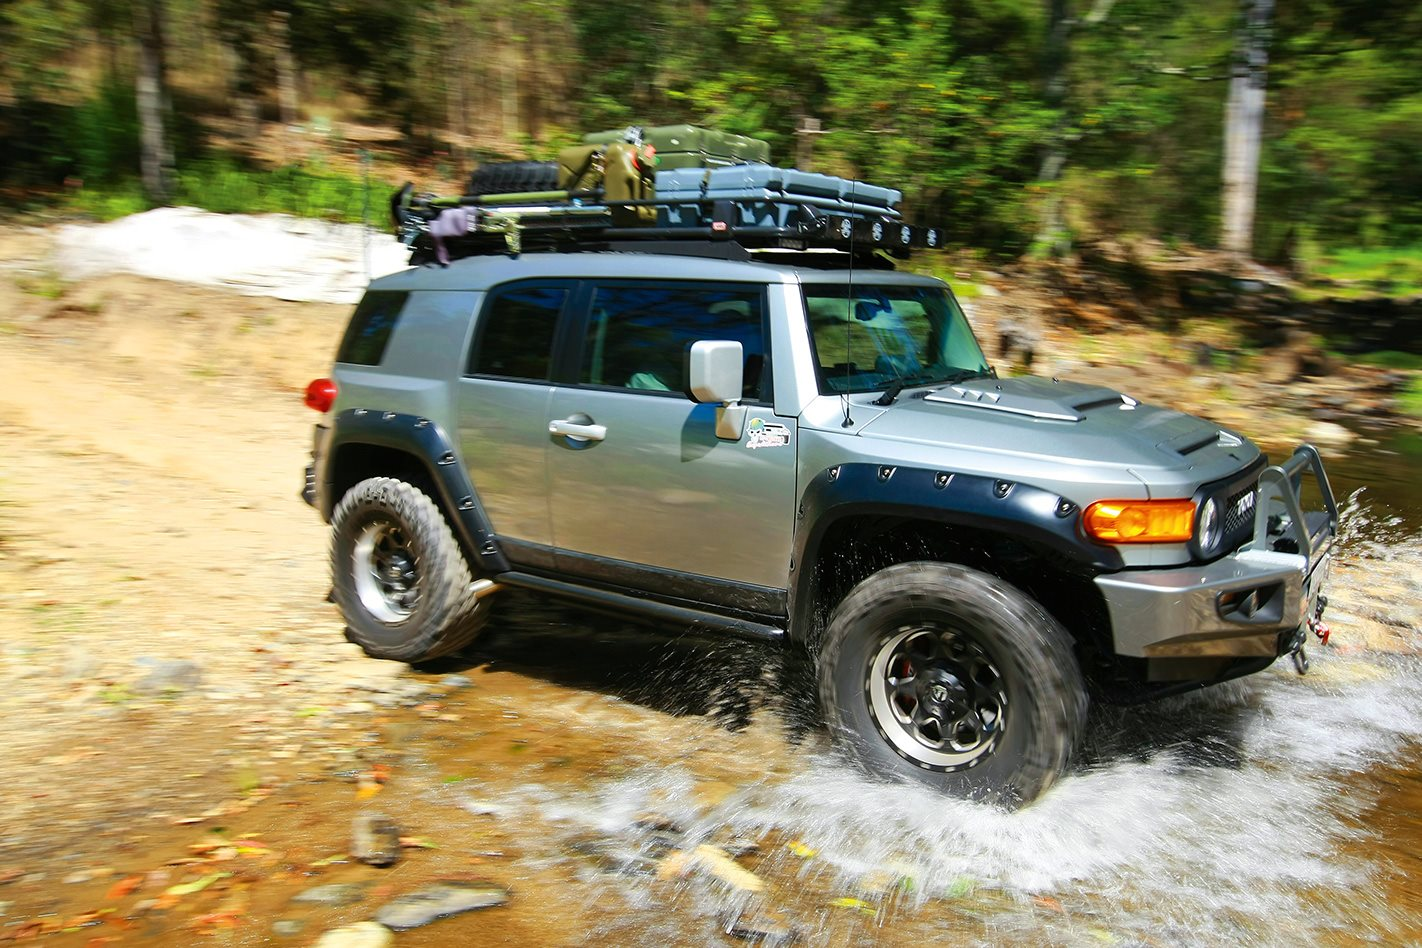 FJ-CRUISER-WITH-THE-LOT.jpg